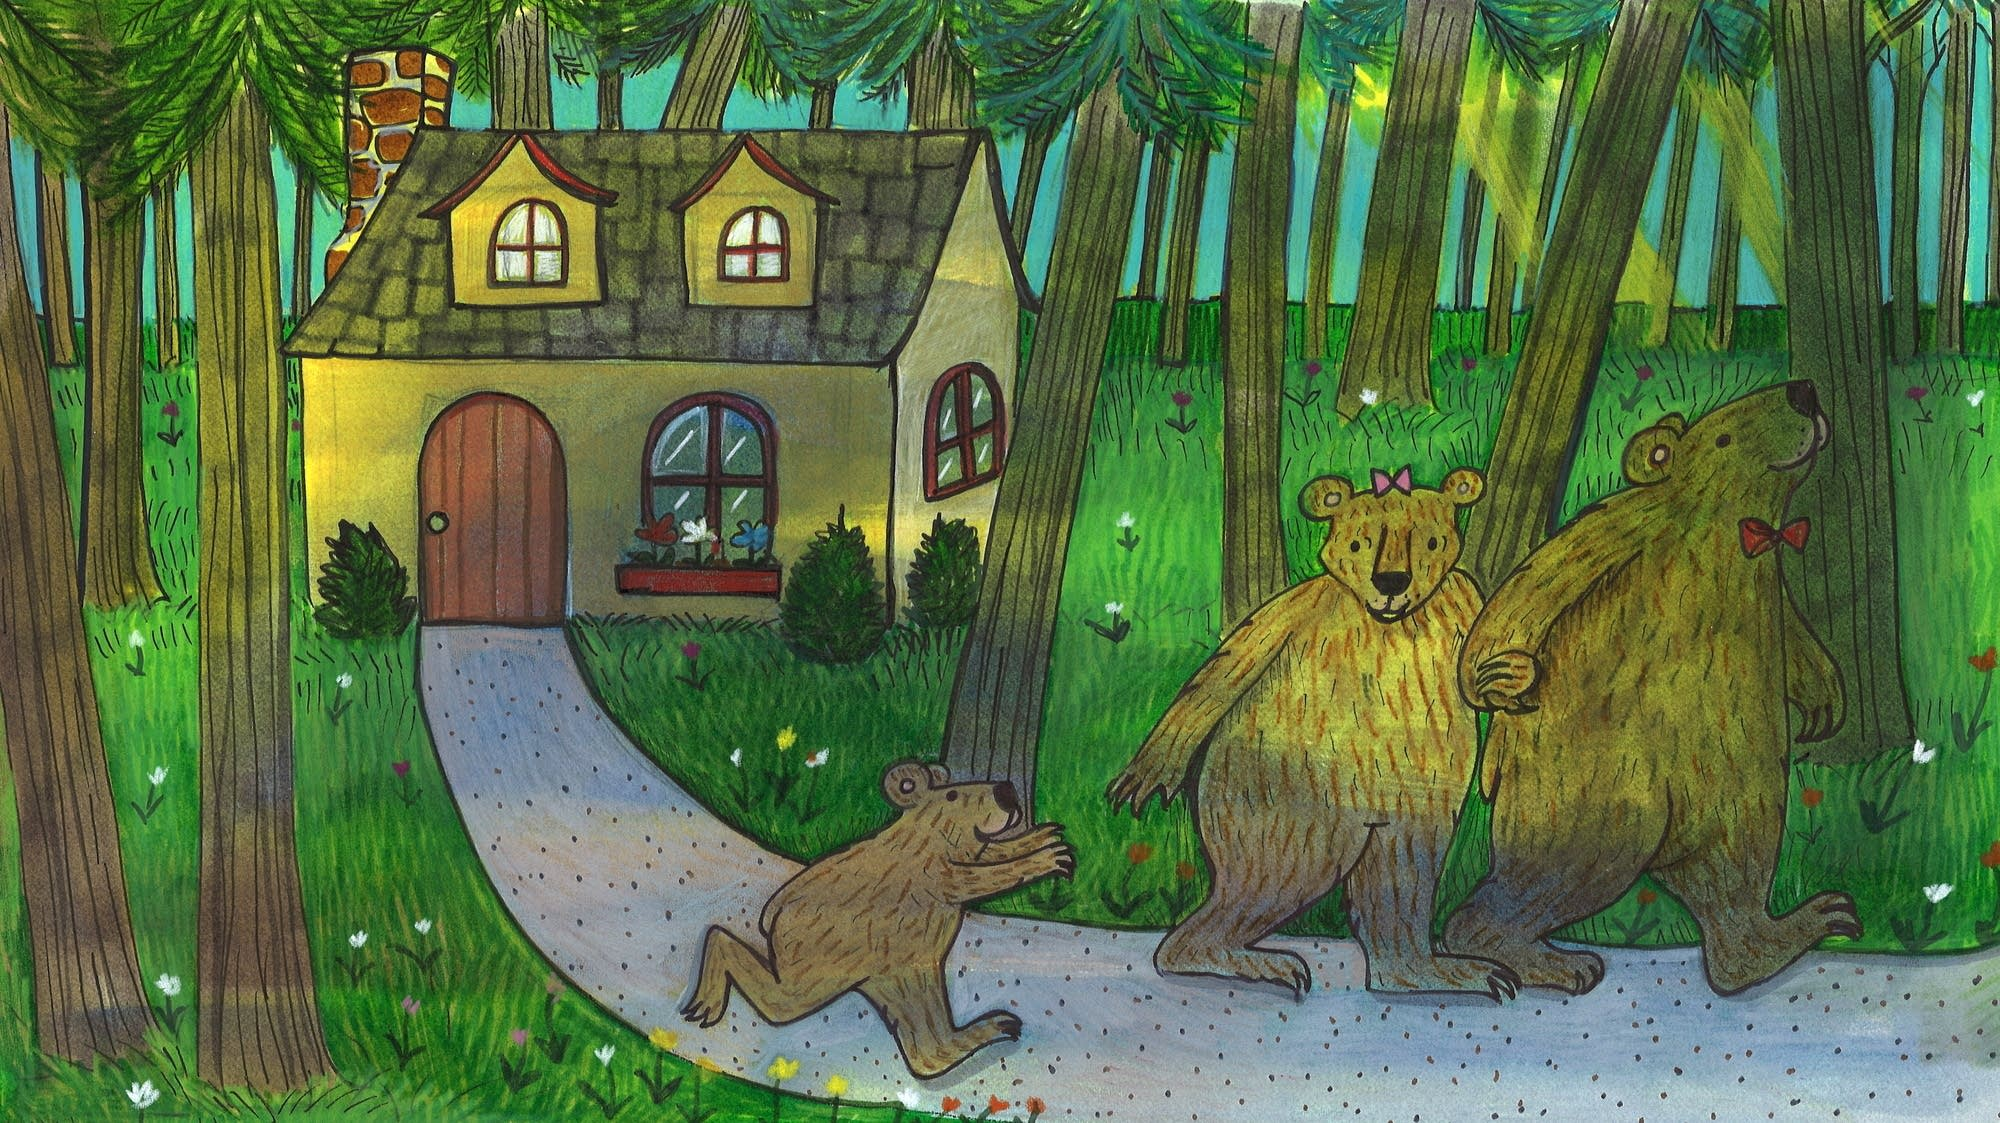 Goldilocks and the Three Bears: The bears took a walk in the forest.